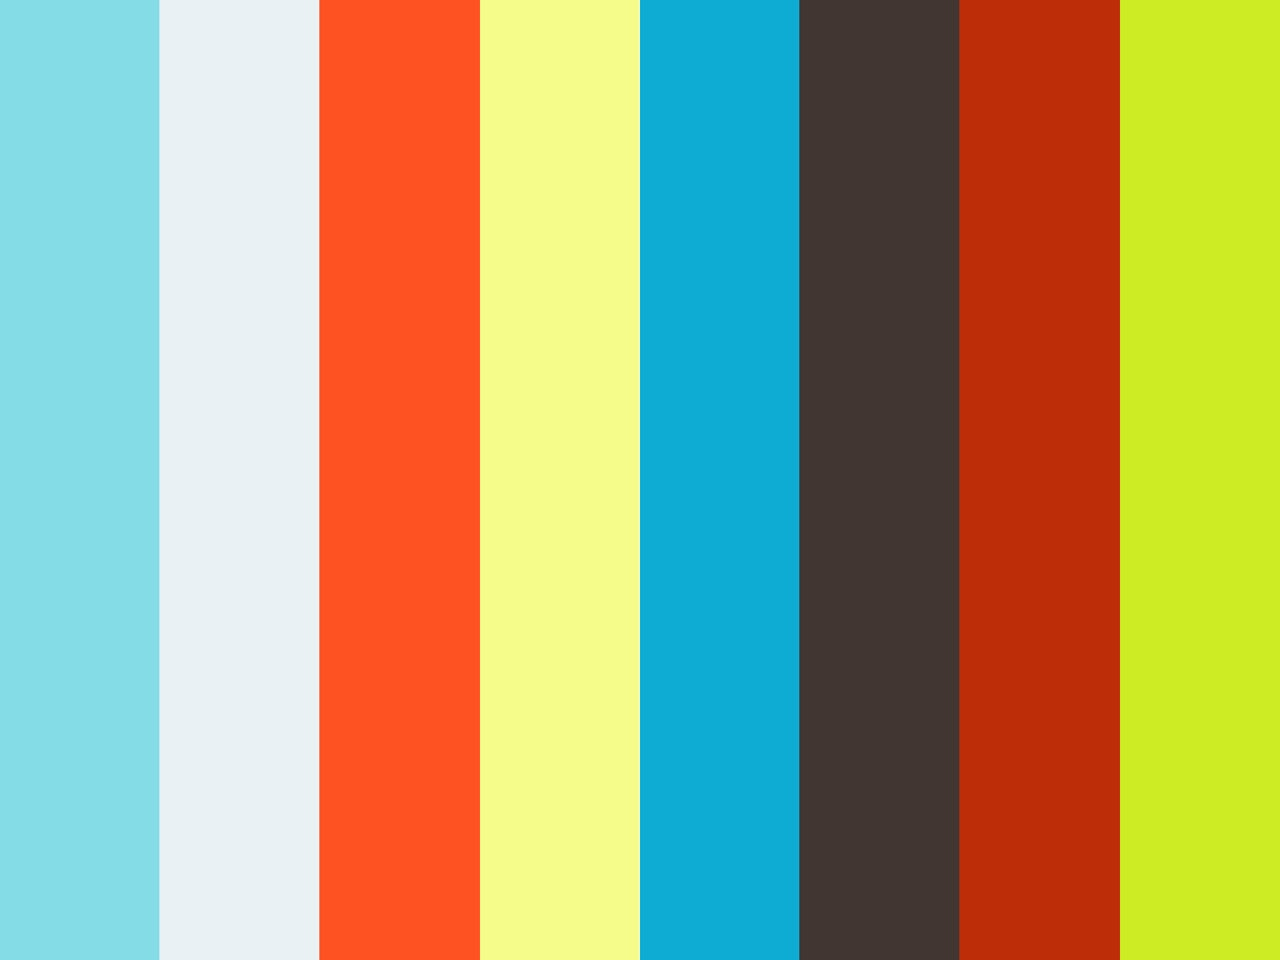 taTME Training, Proctoring and Monitoring: International Consensus 2017